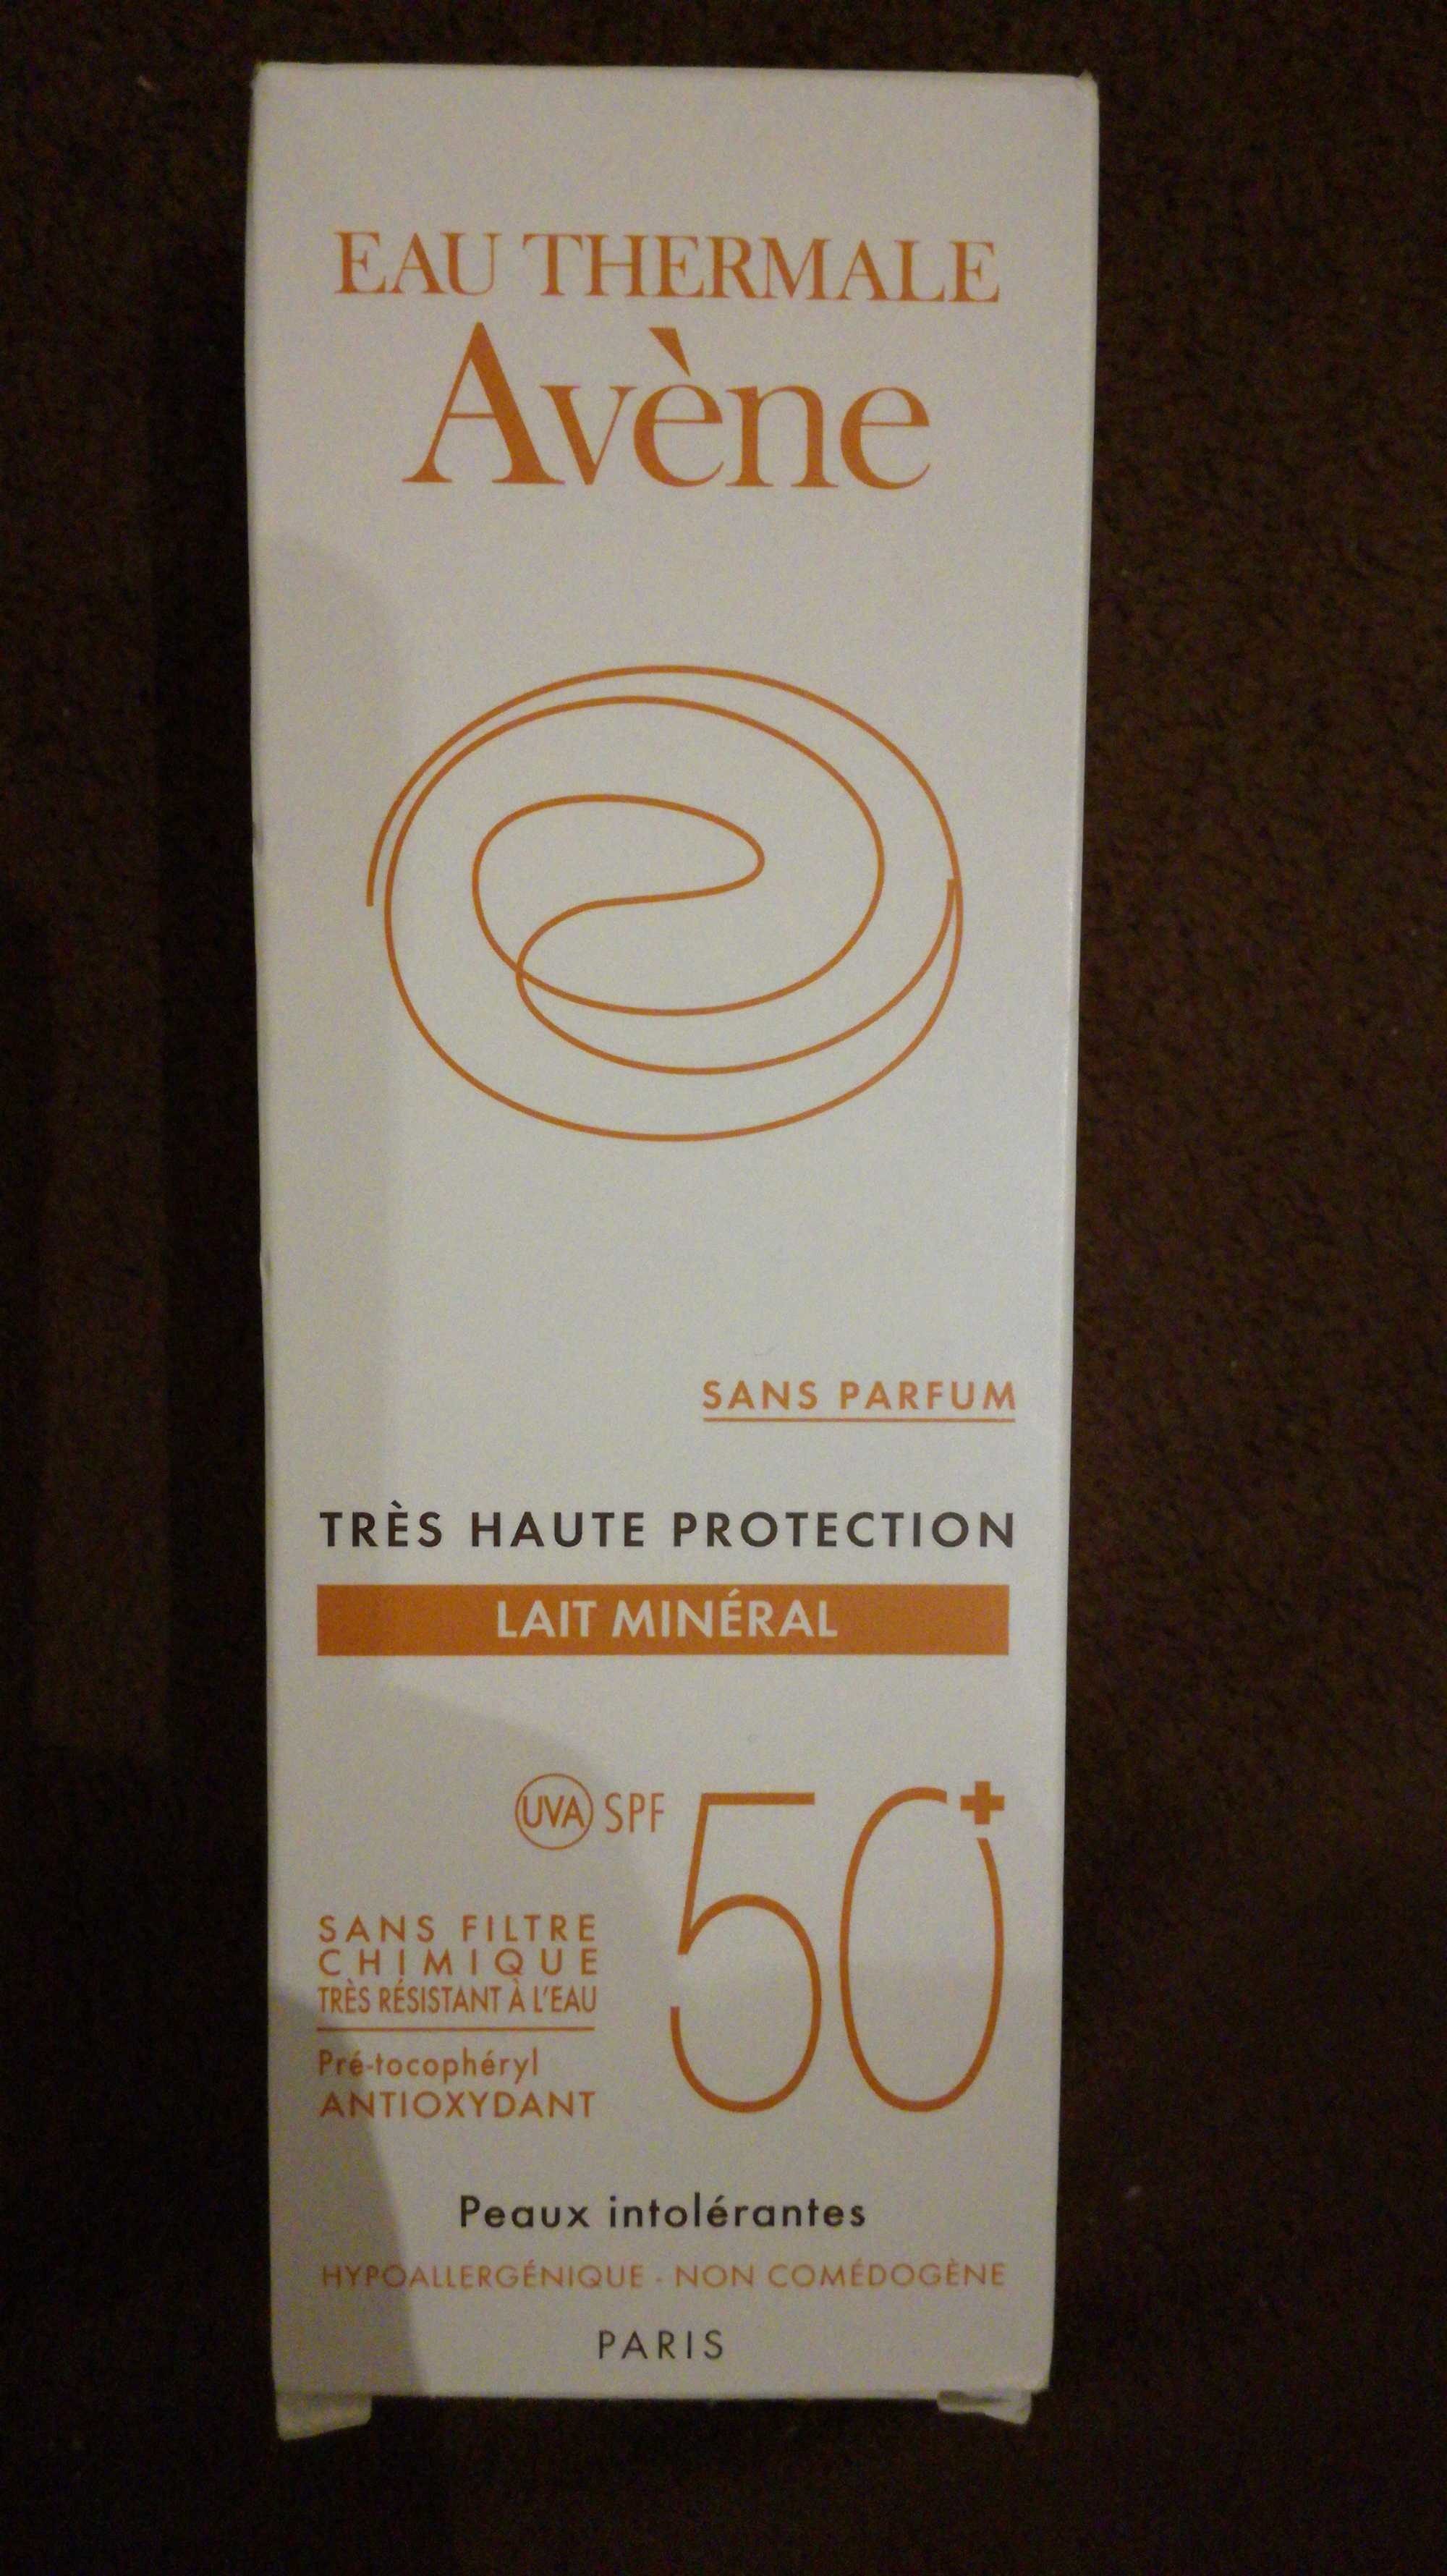 Lait mineral tres haute protection 50 - Product